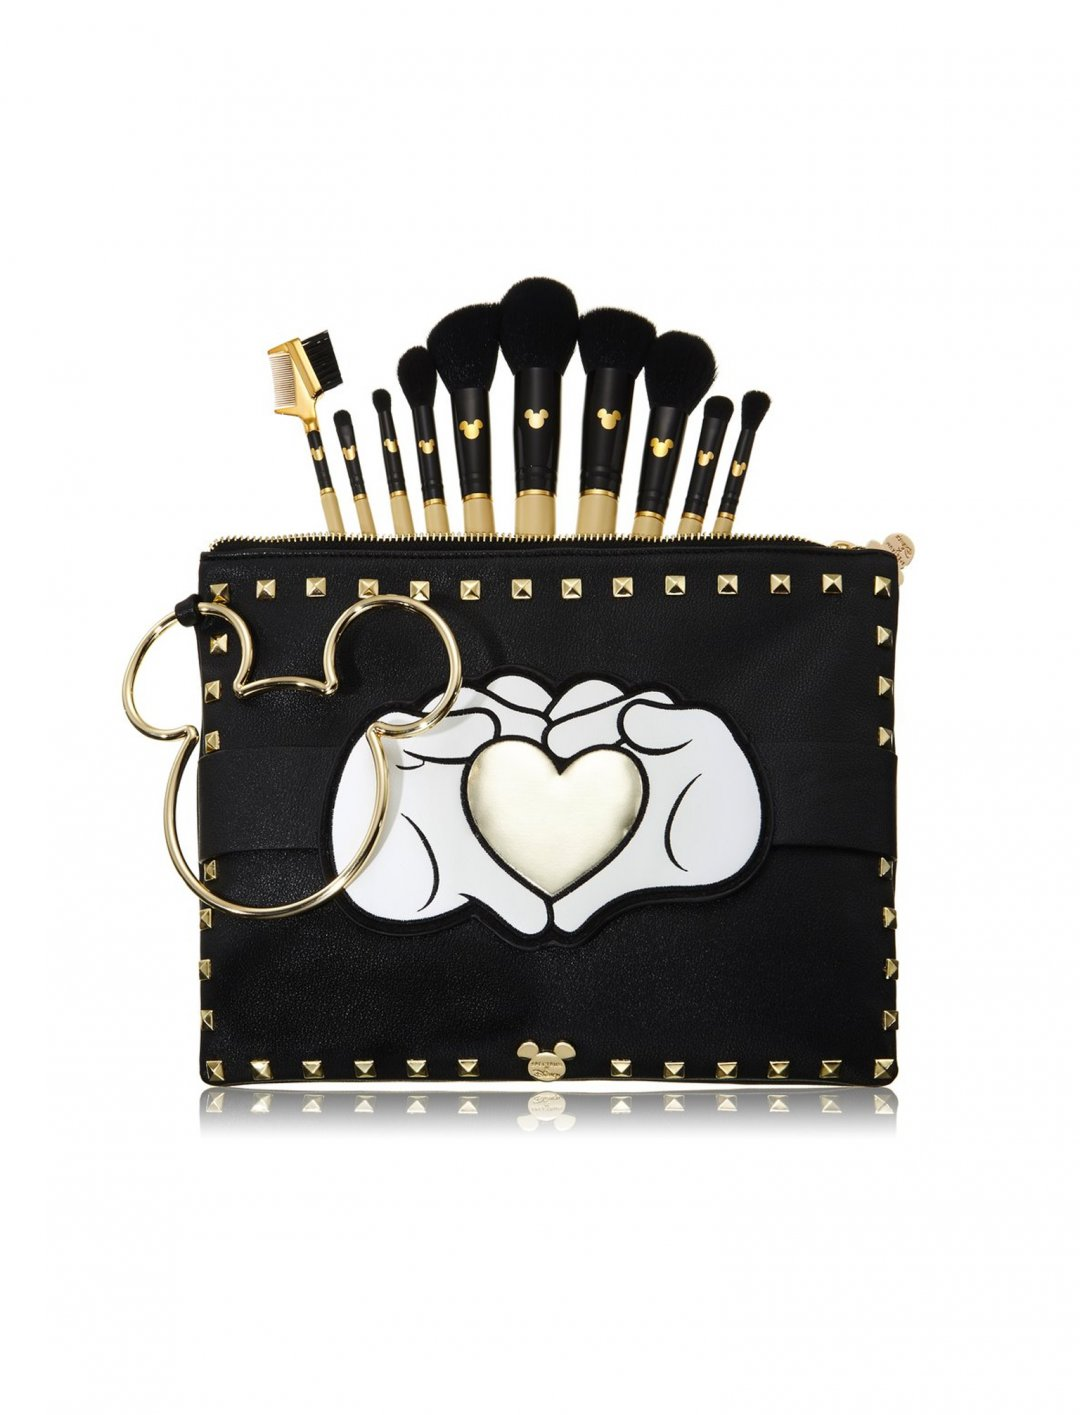 "Brush Set and Pouch Bag {""id"":15,""product_section_id"":1,""name"":""Other"",""order"":0} Spectrum x Mickey Mouse"